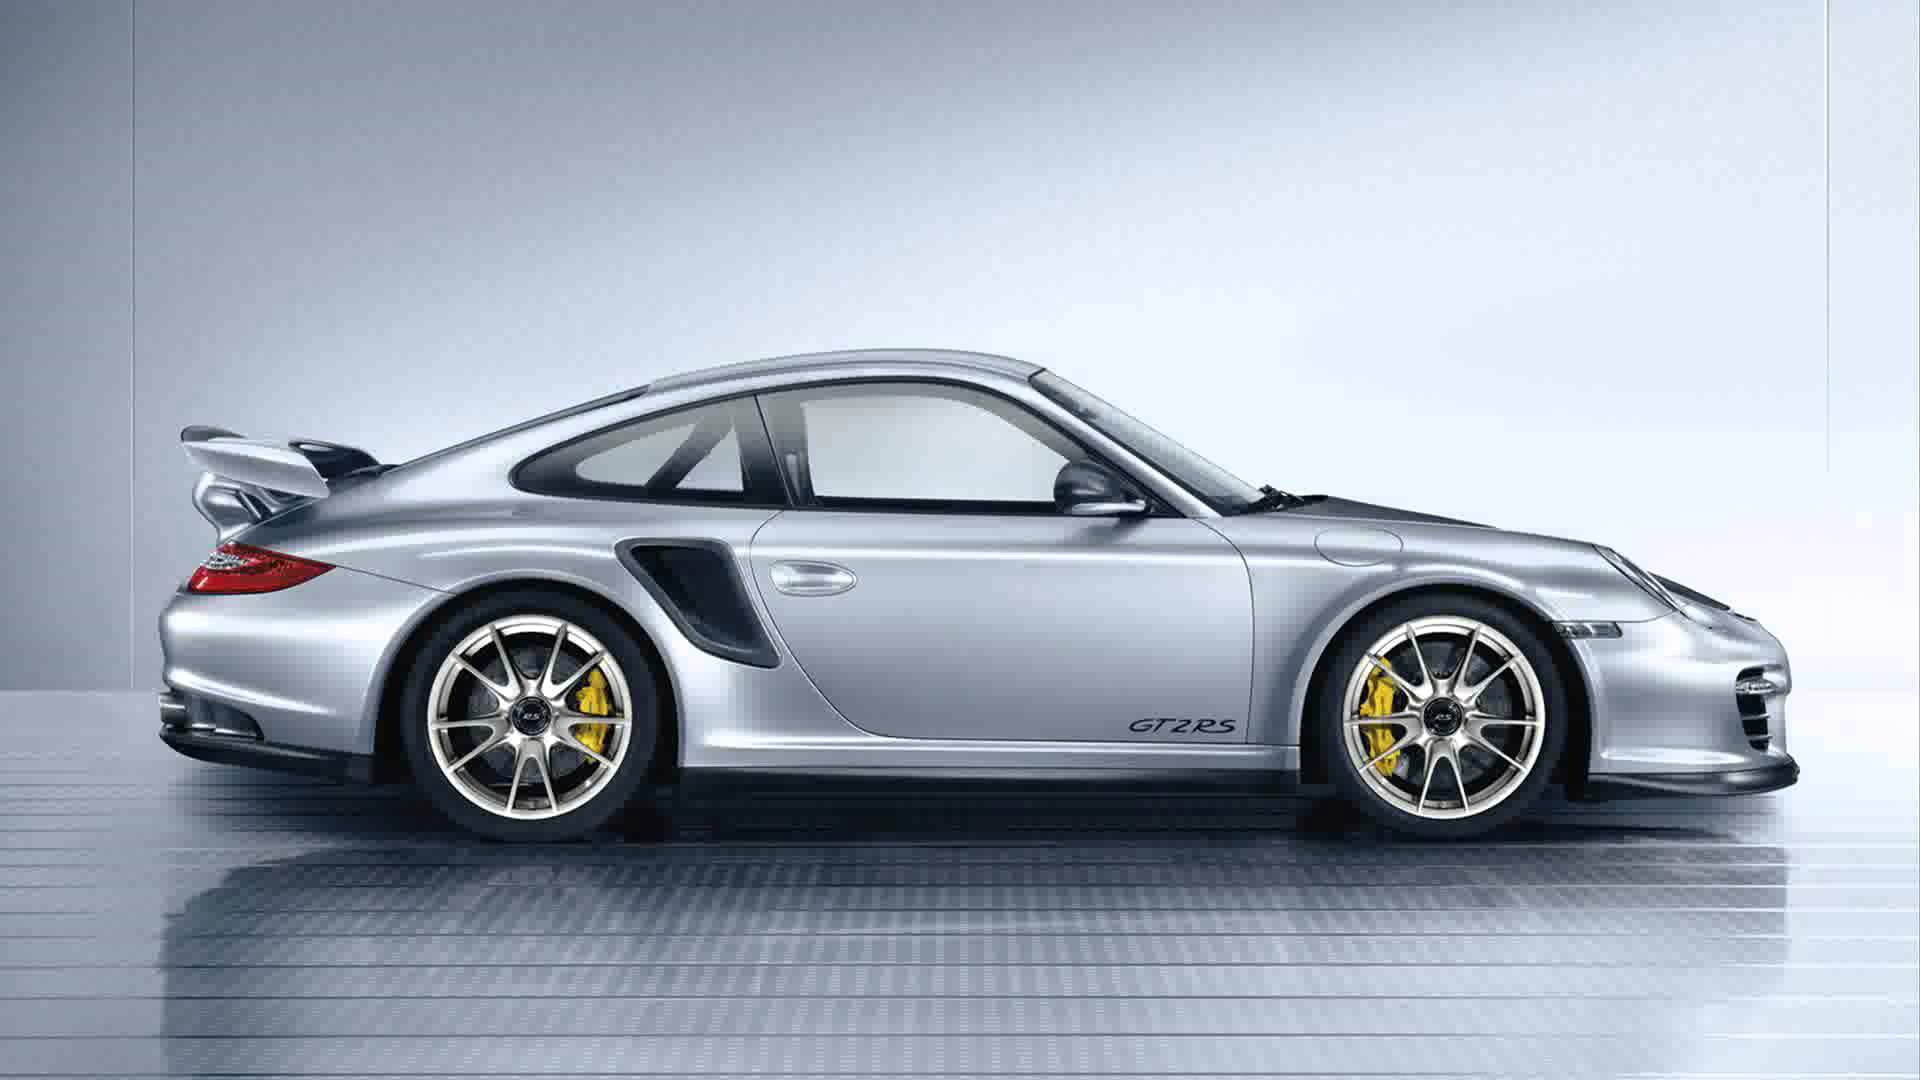 maxresdefault Outstanding Porsche 911 Gt2 Rs Price In India Cars Trend